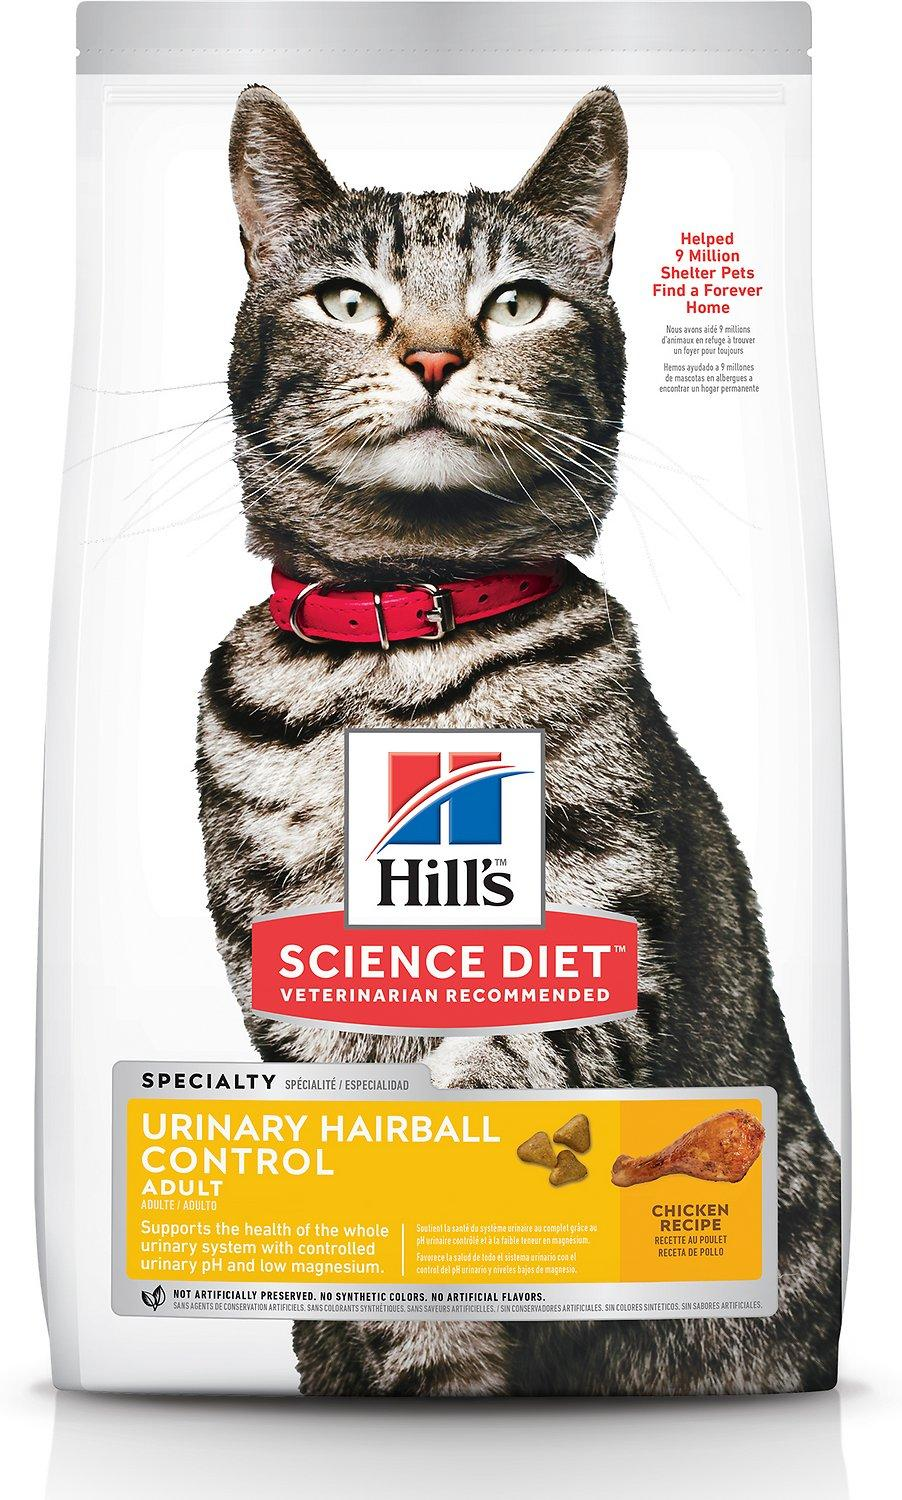 Hill's Science Diet Adult Urinary Hairball Control Dry Cat Food Image